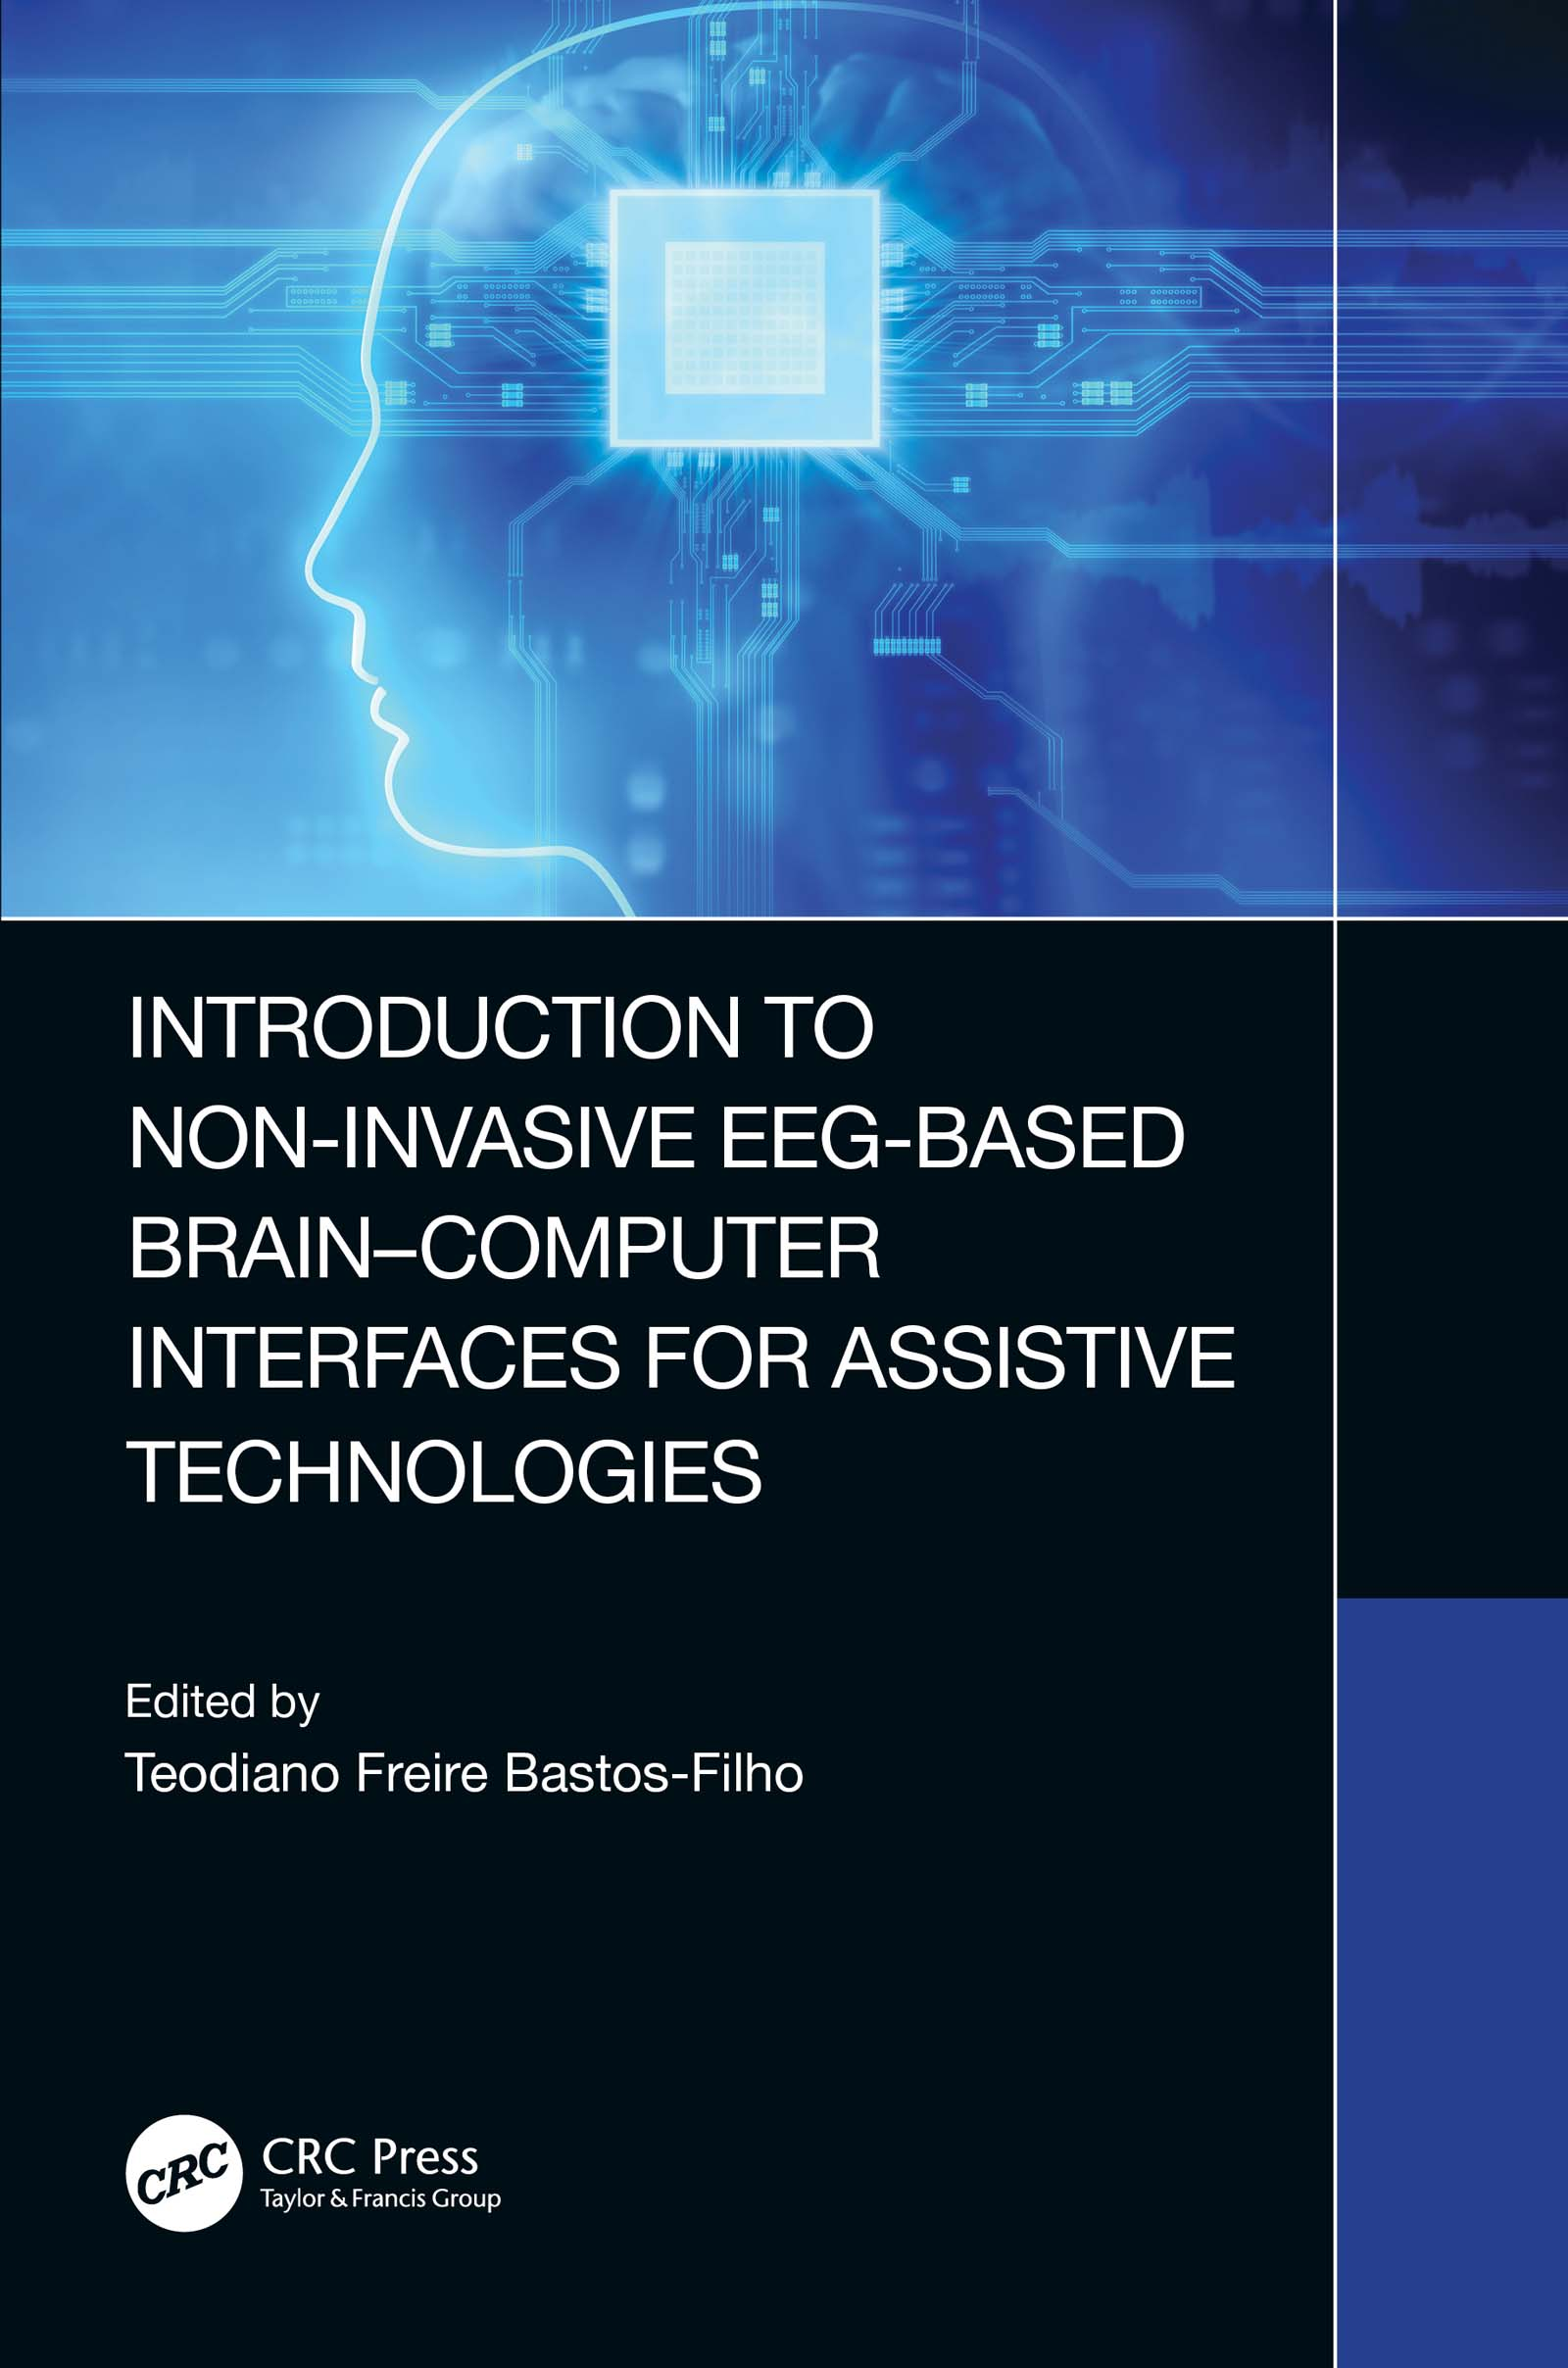 Introduction to Non-Invasive EEG-Based Brain-Computer Interfaces for Assistive Technologies